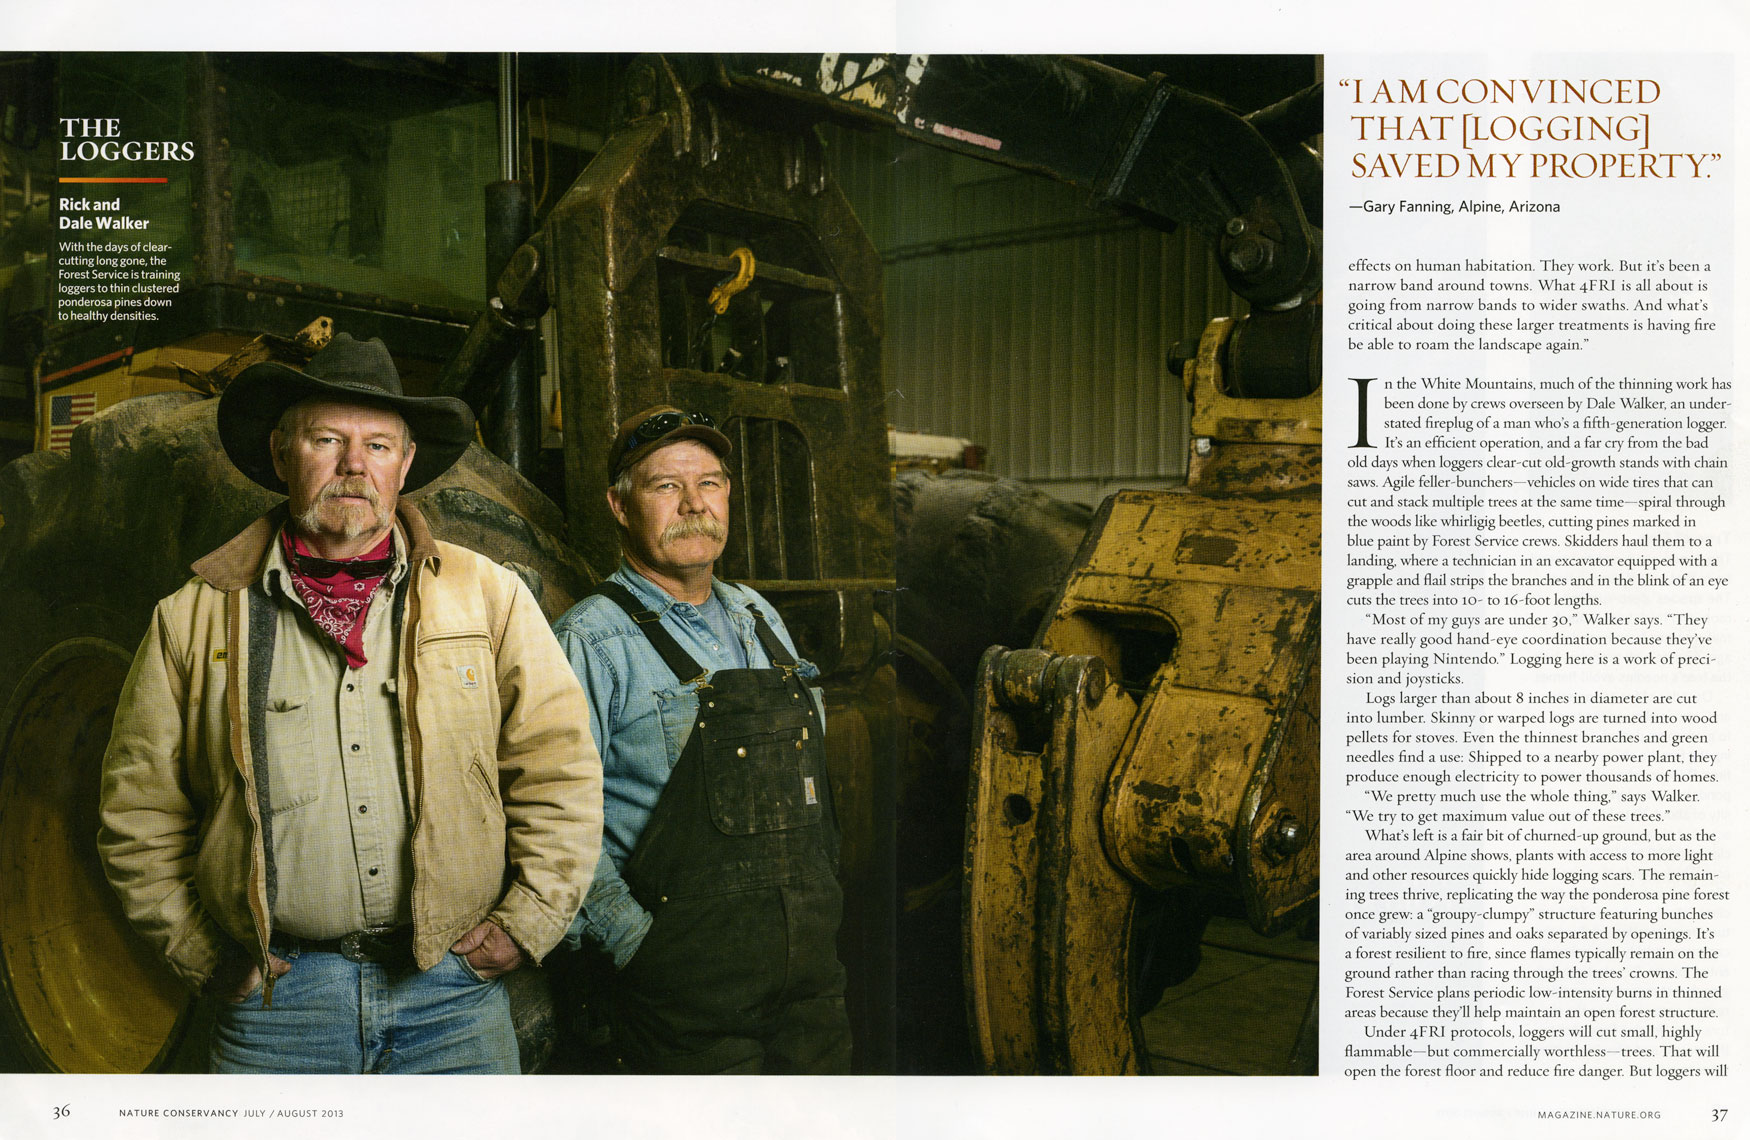 Nature Conservancy: The Loggers. SPREAD 3: RICK AND DALE WALKER